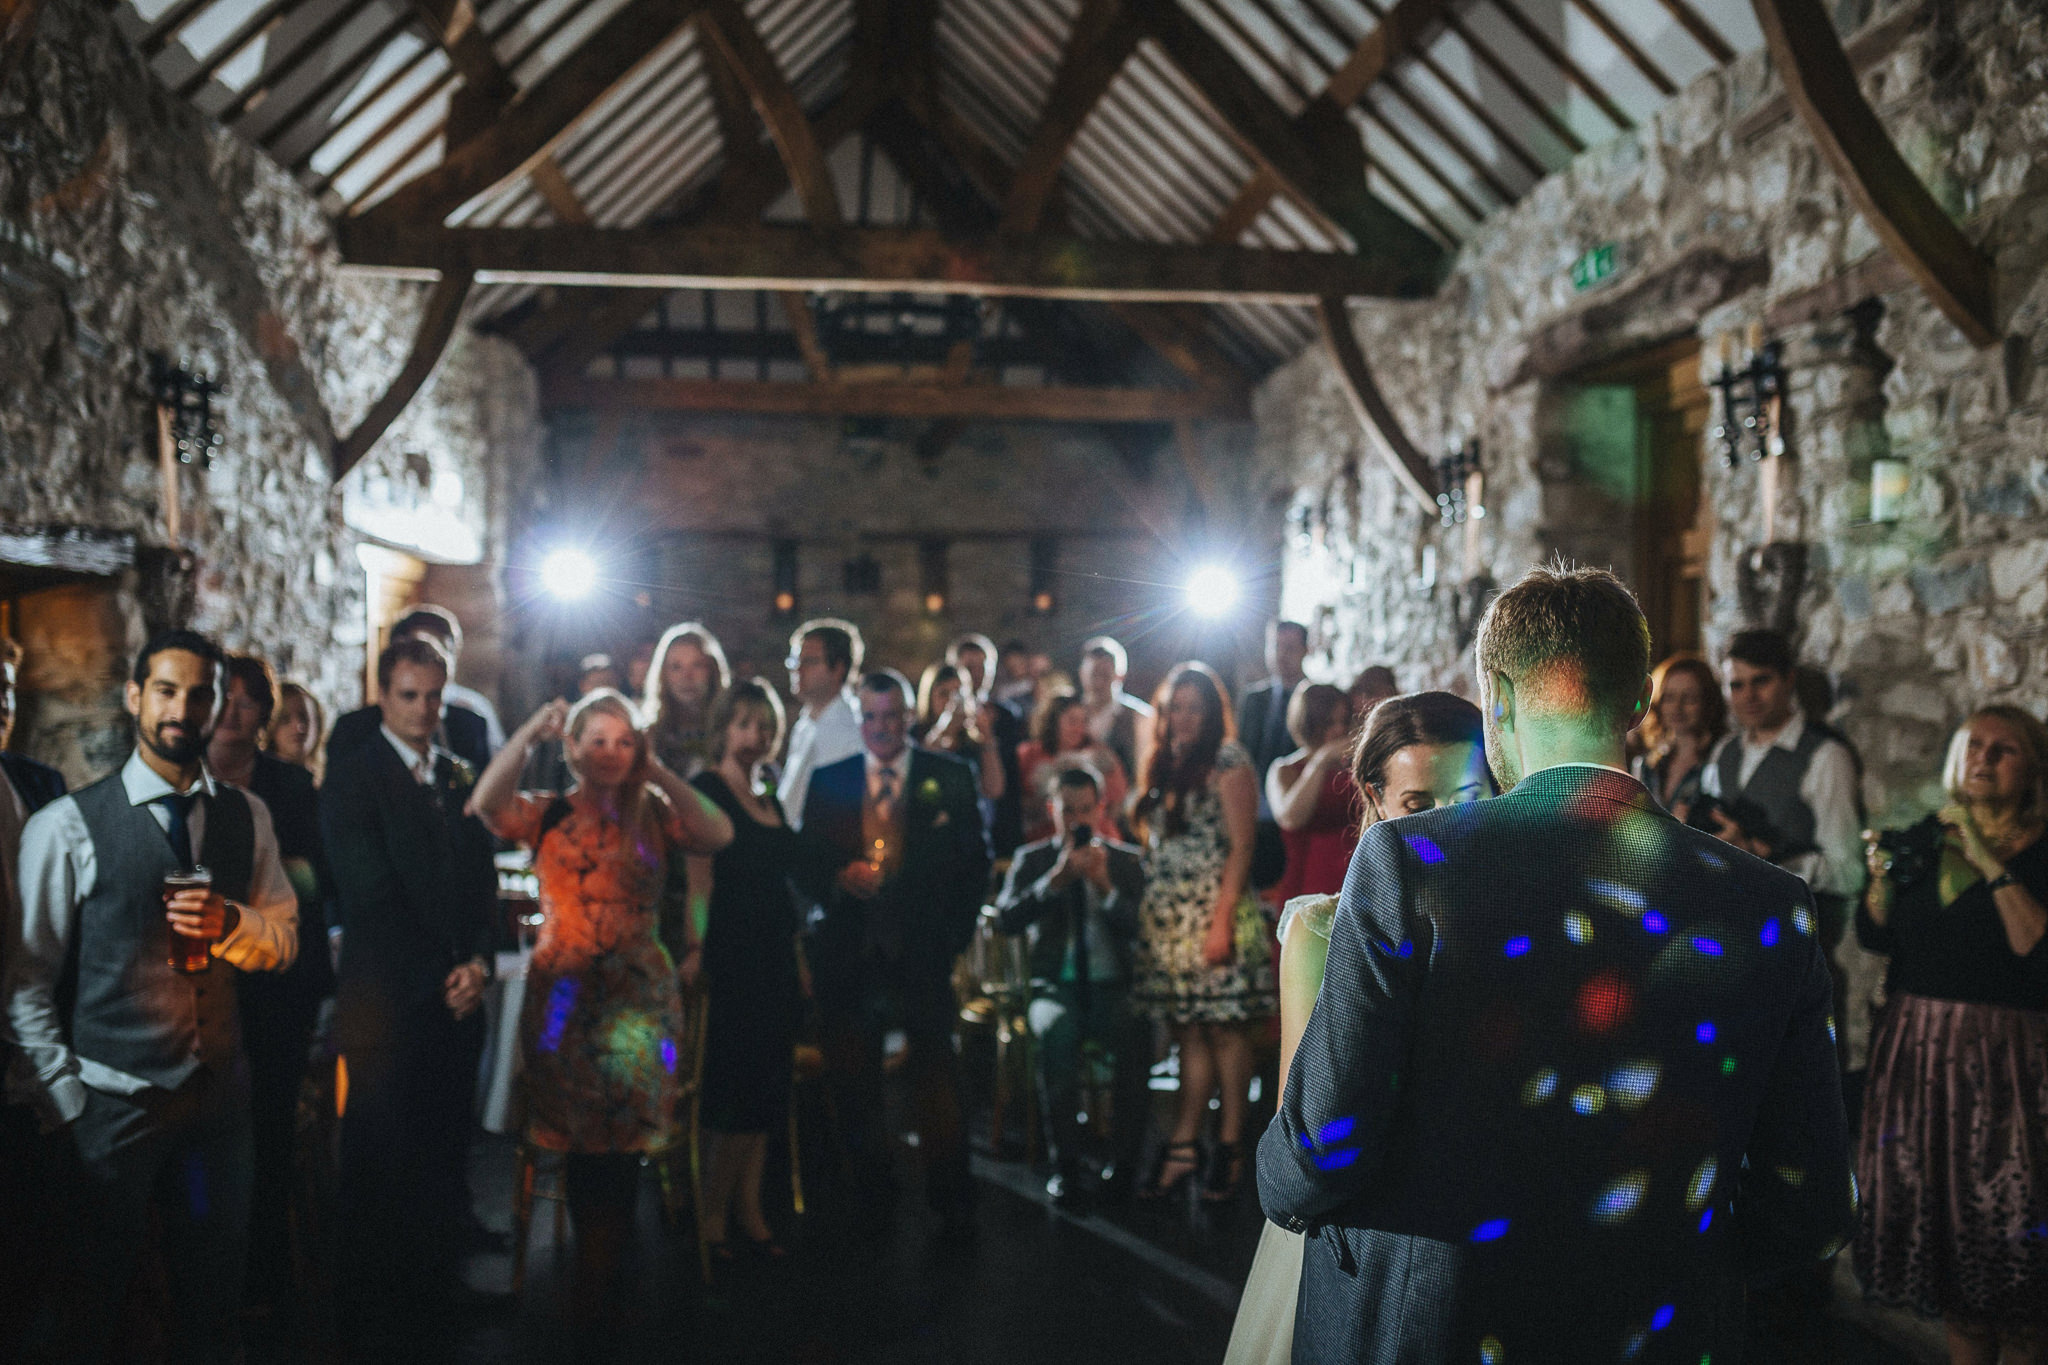 plas-isaf-corwen-north-wales-farm-wedding-photography-photographer-90089